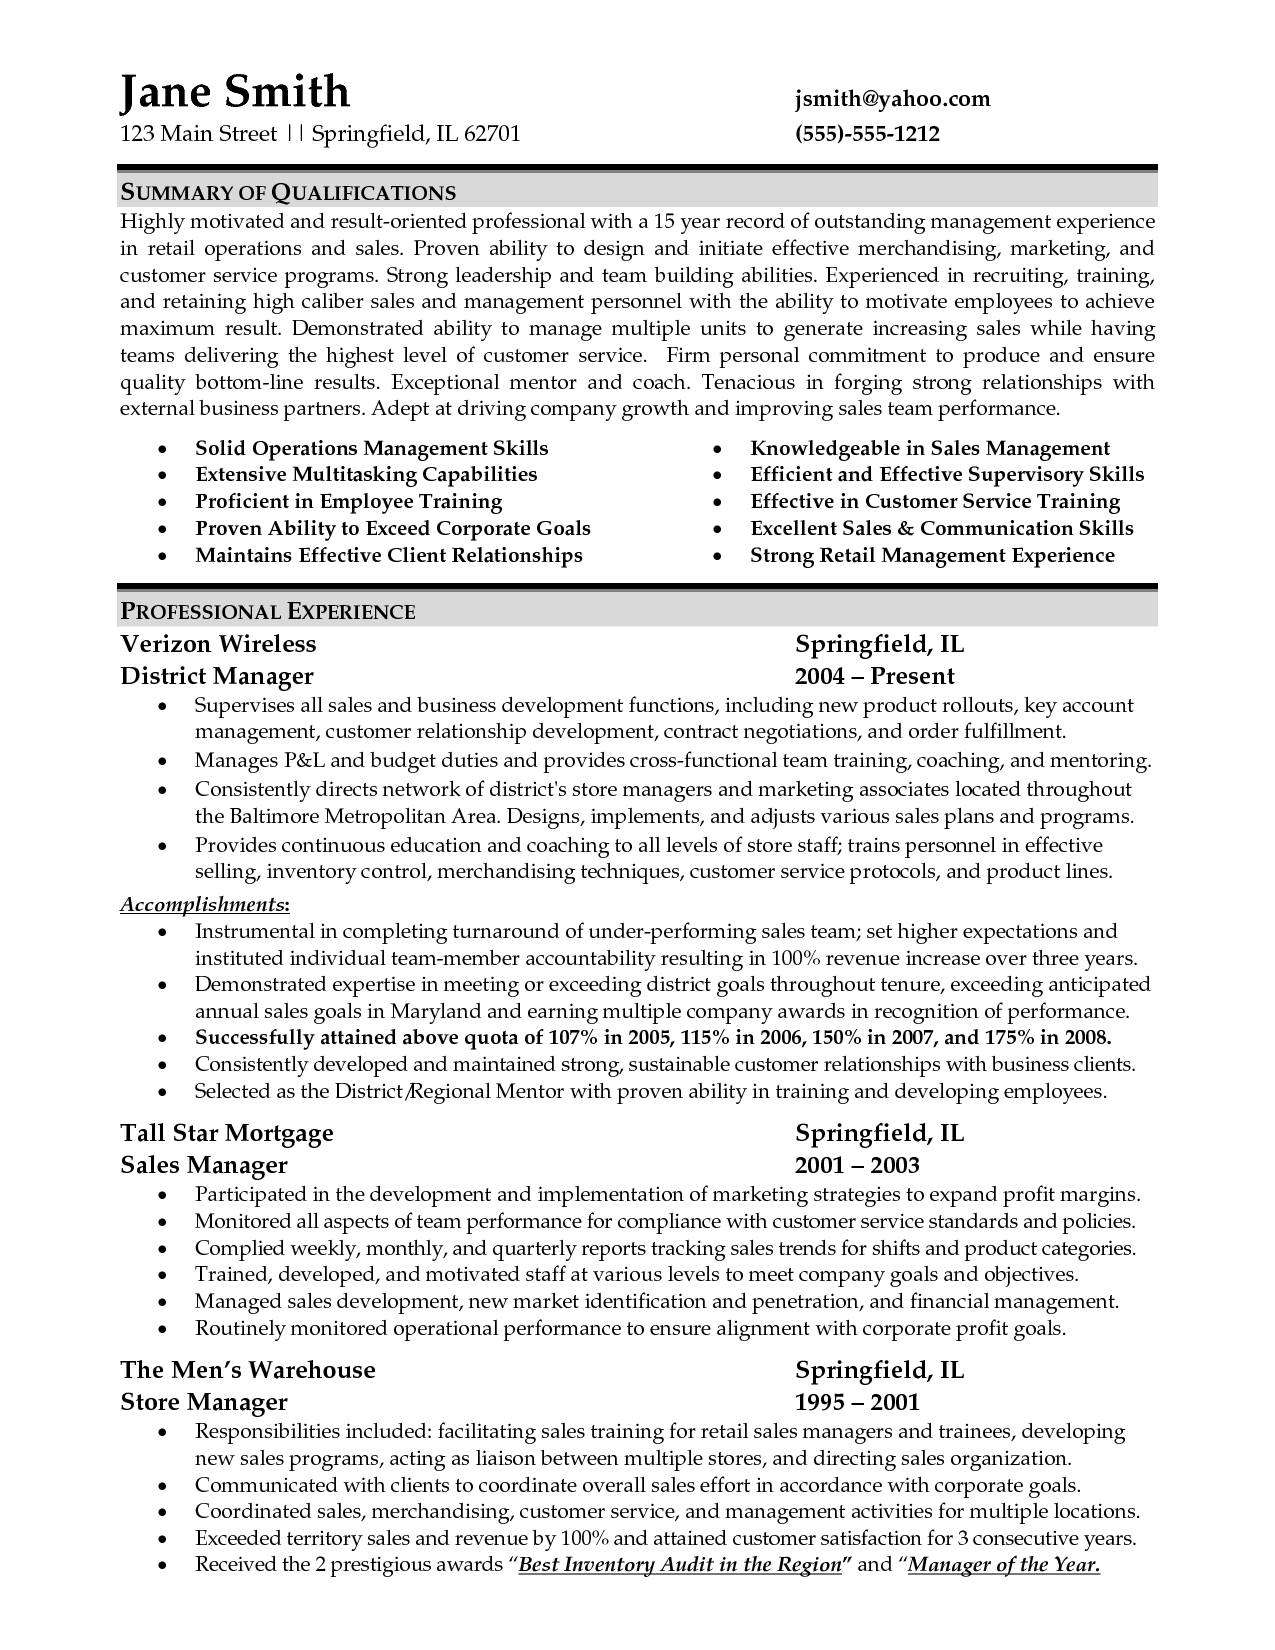 Retail Operations Manager Resume Sample Resume For Retail Management Job Retail Store